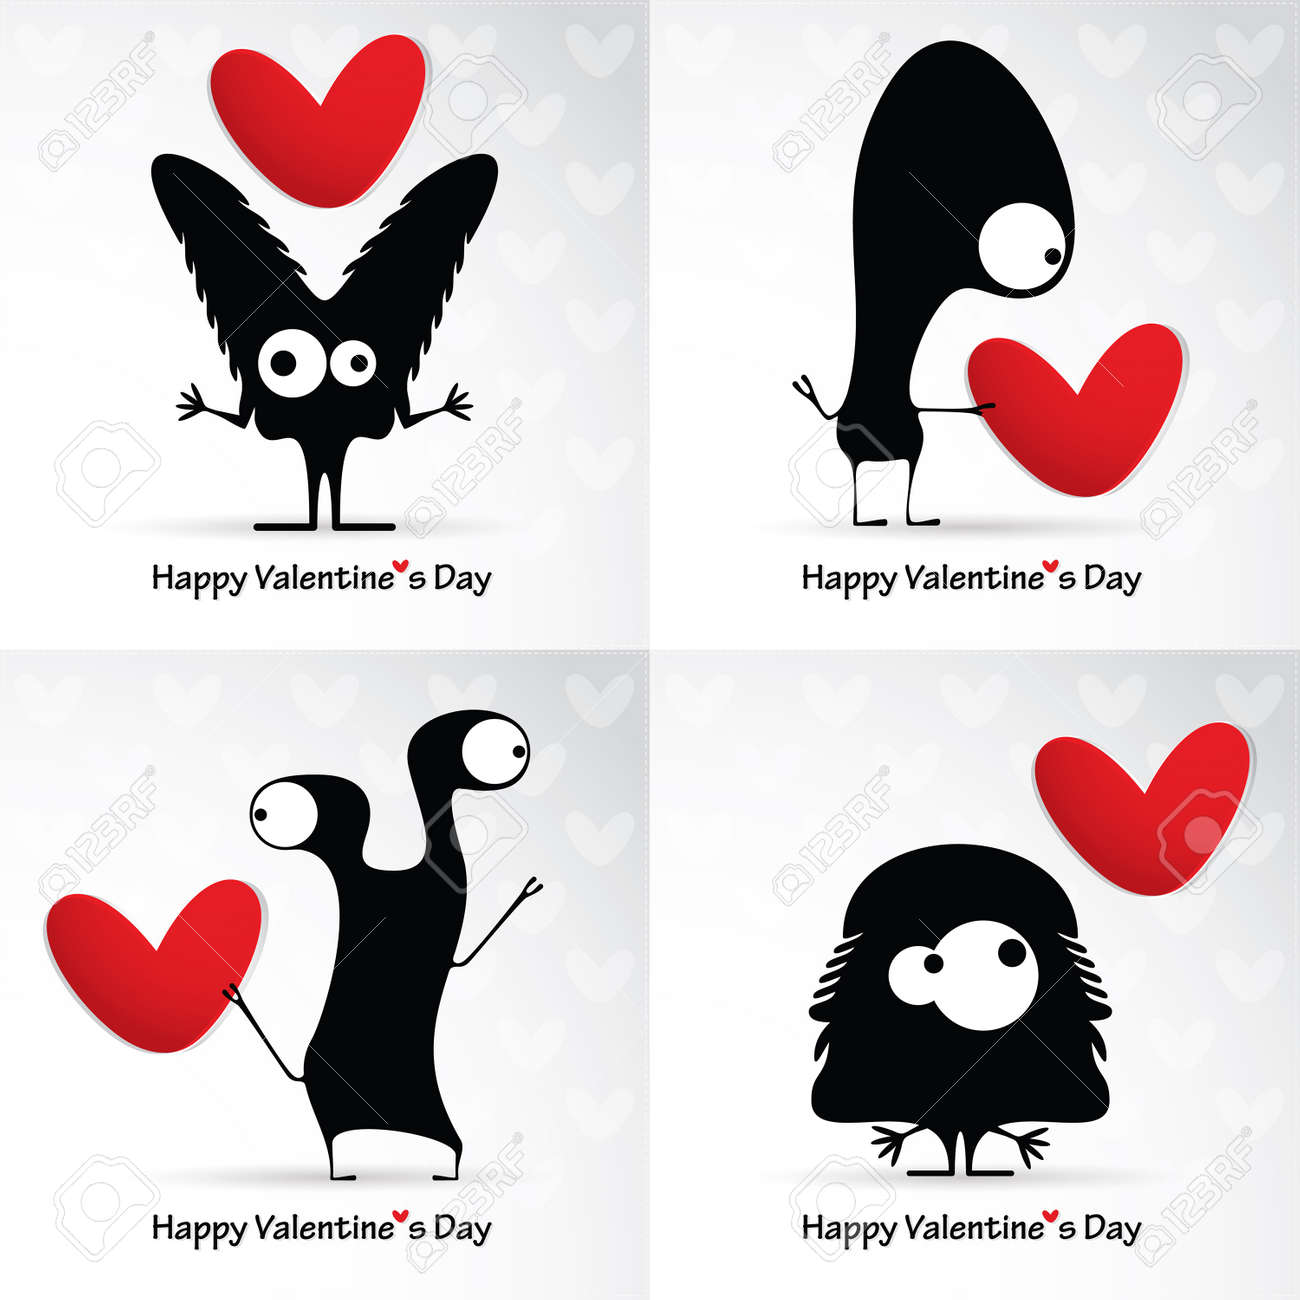 Valentine's day card with monsters and hearts Stock Vector - 25077466